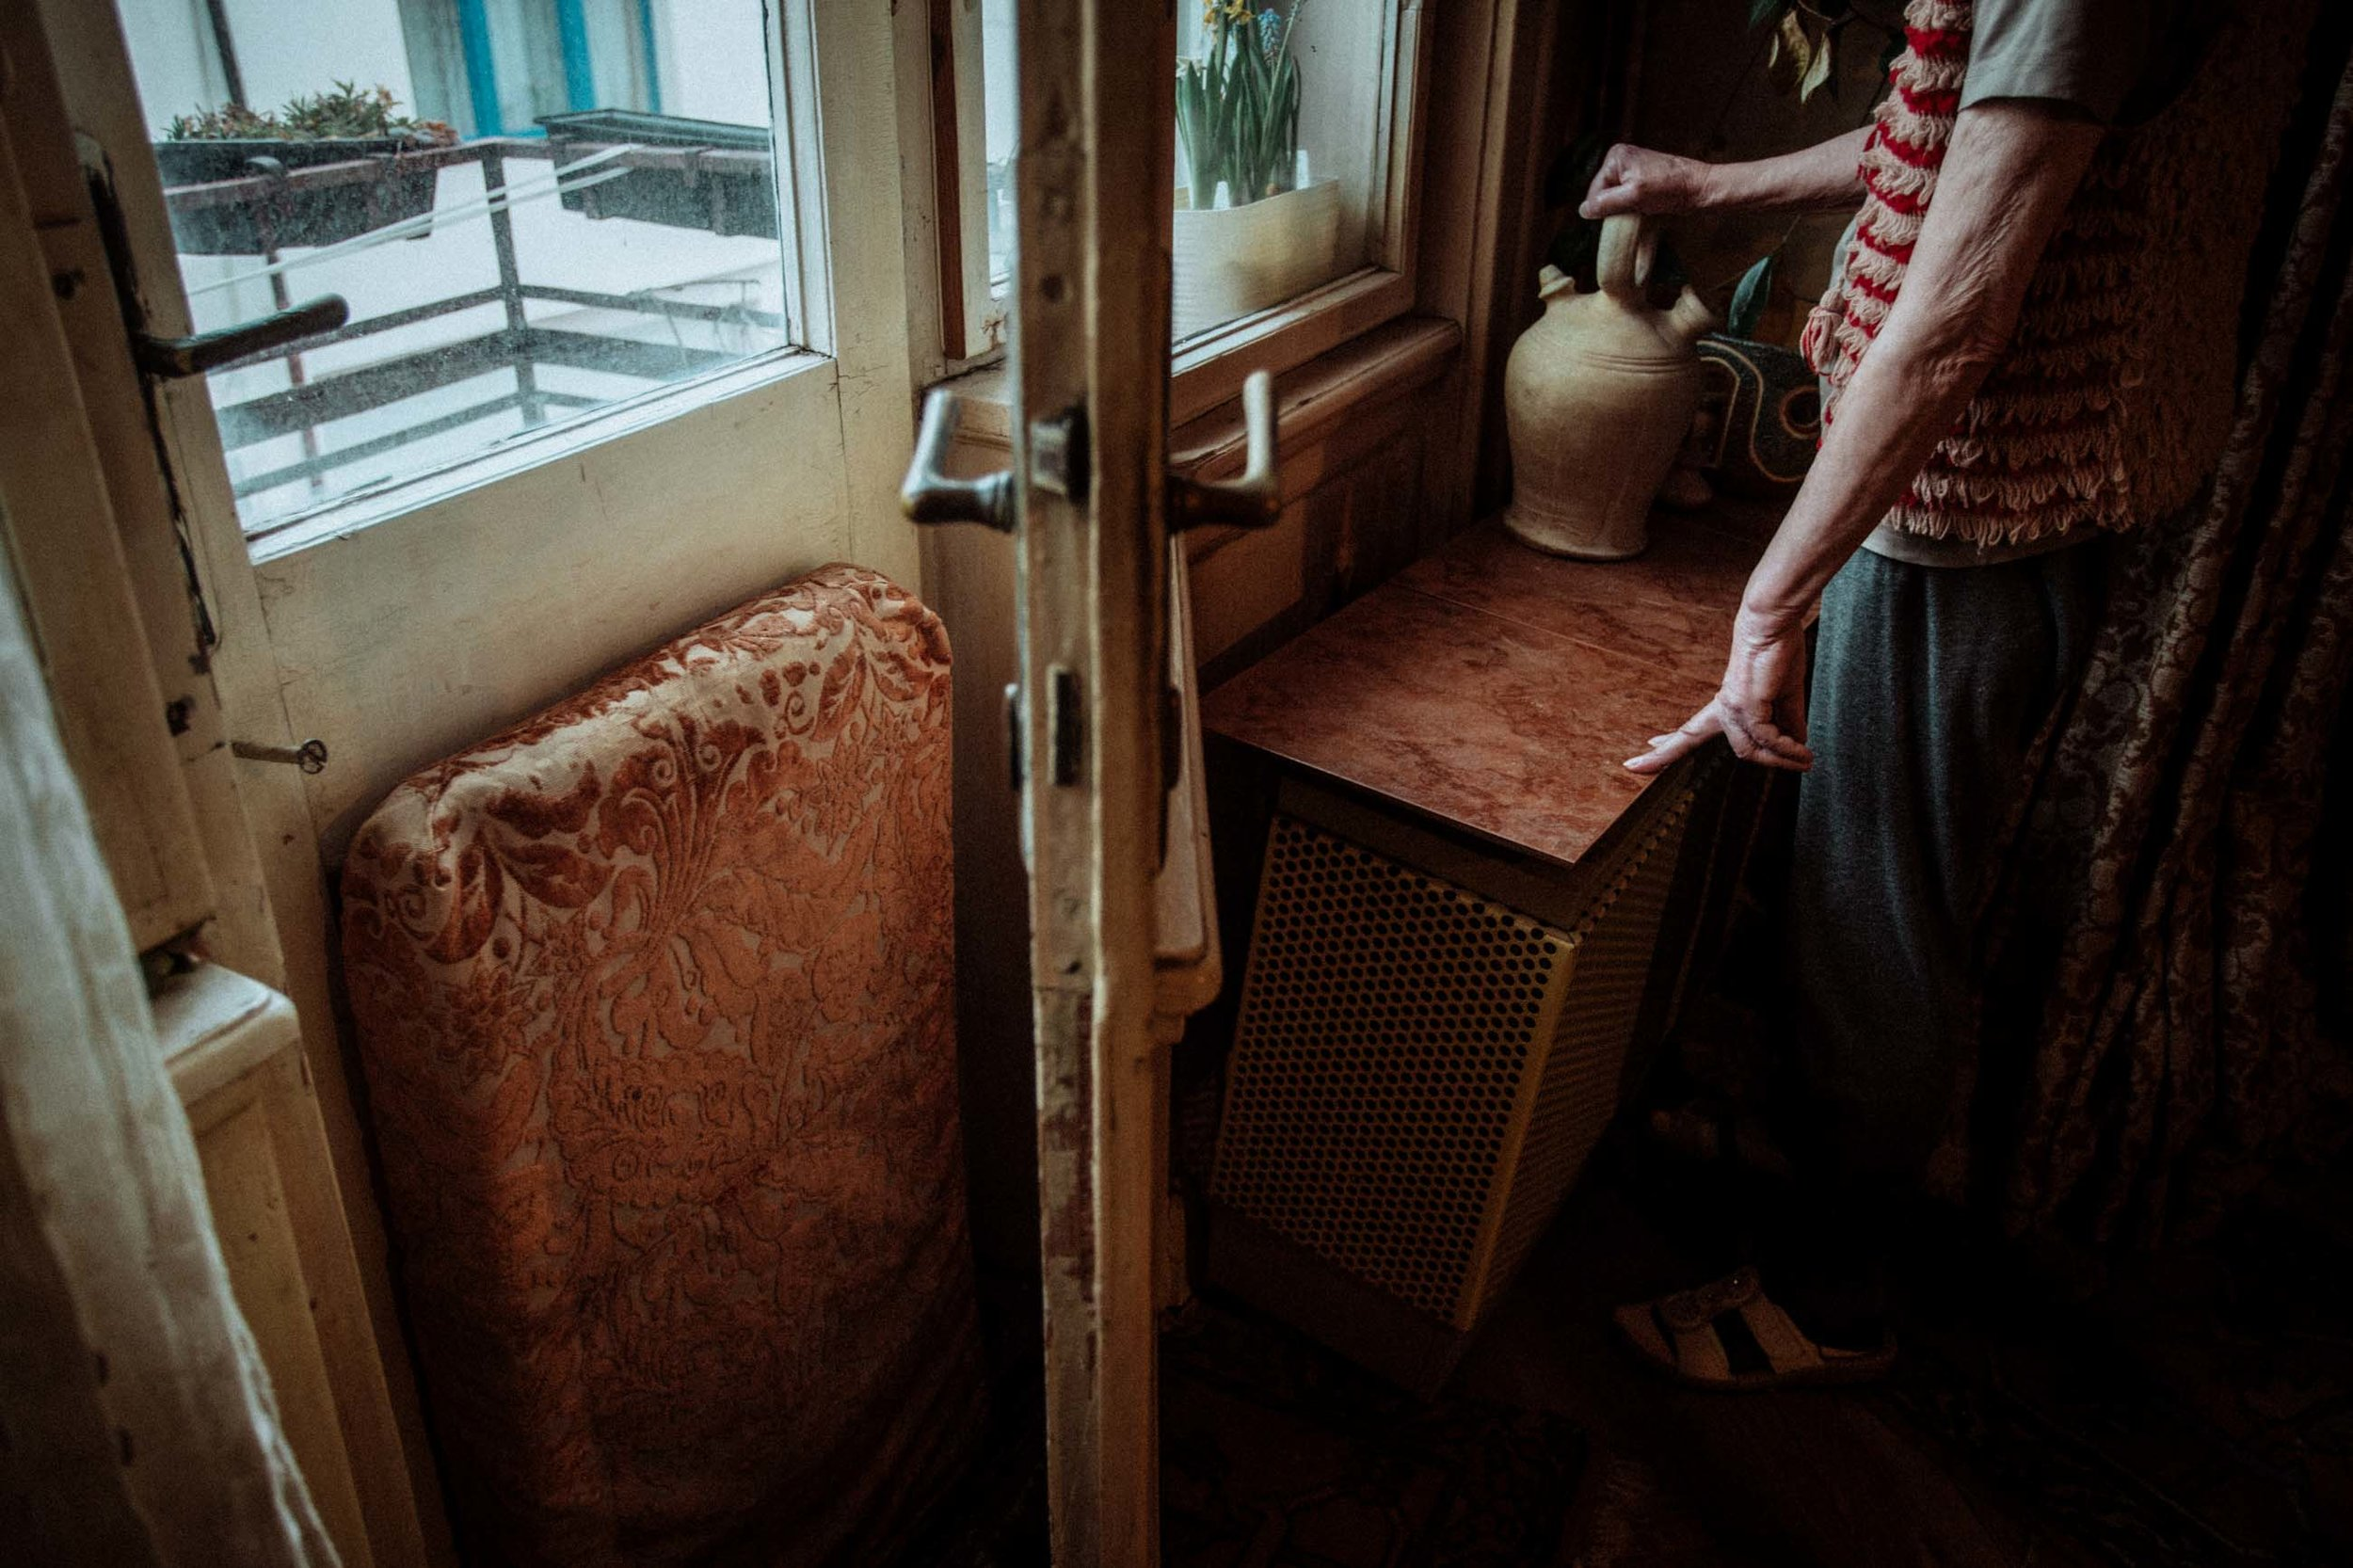 BUDAPEST • On a mild day, Lőrincné (Kati) Unger opens the window for fresh air. For many Budapesters, this is the only way to deal with overheating.